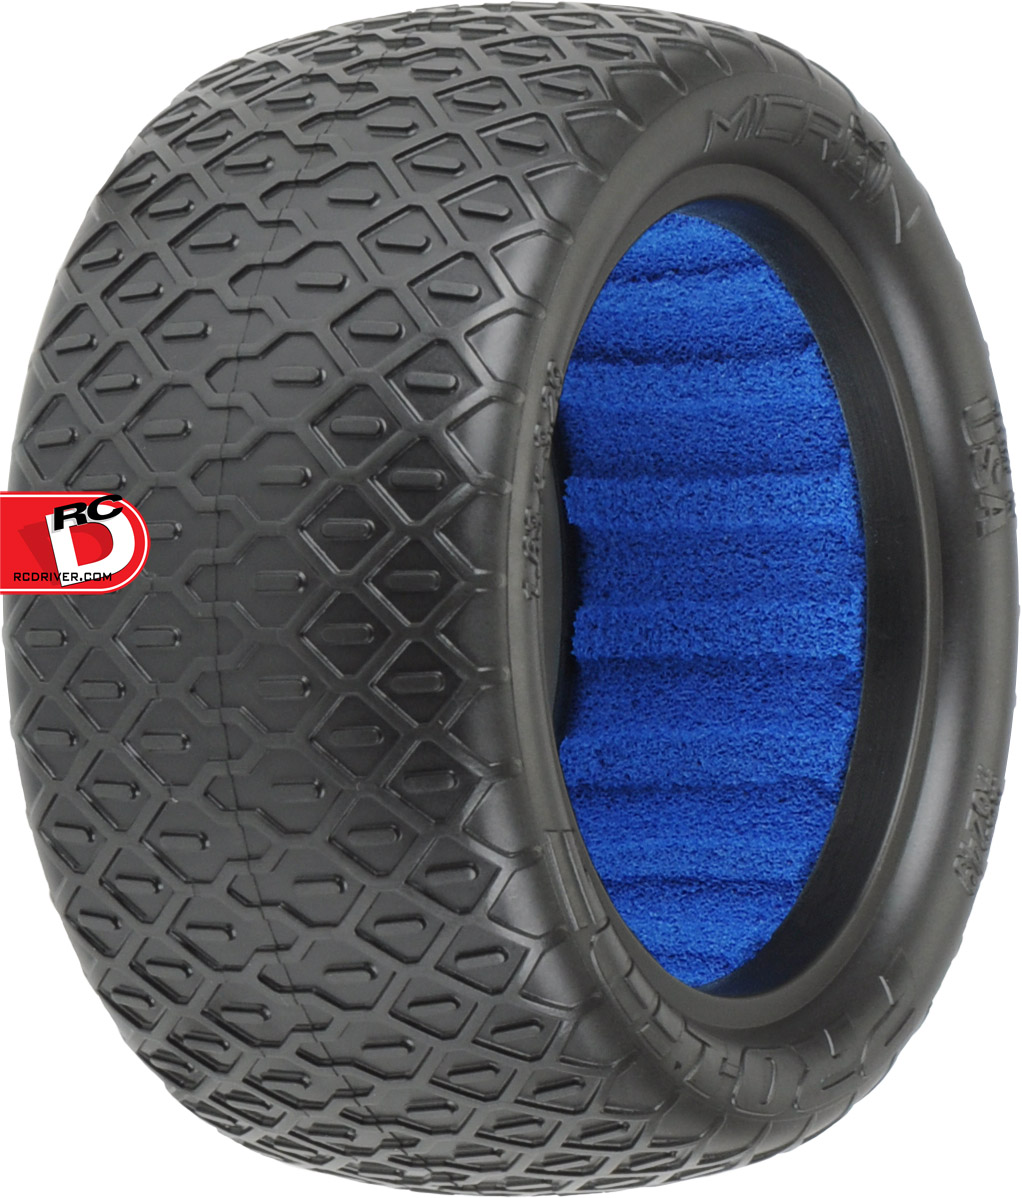 Pro-Line - Micron 2.2 Off-Road Buggy Rear Tires